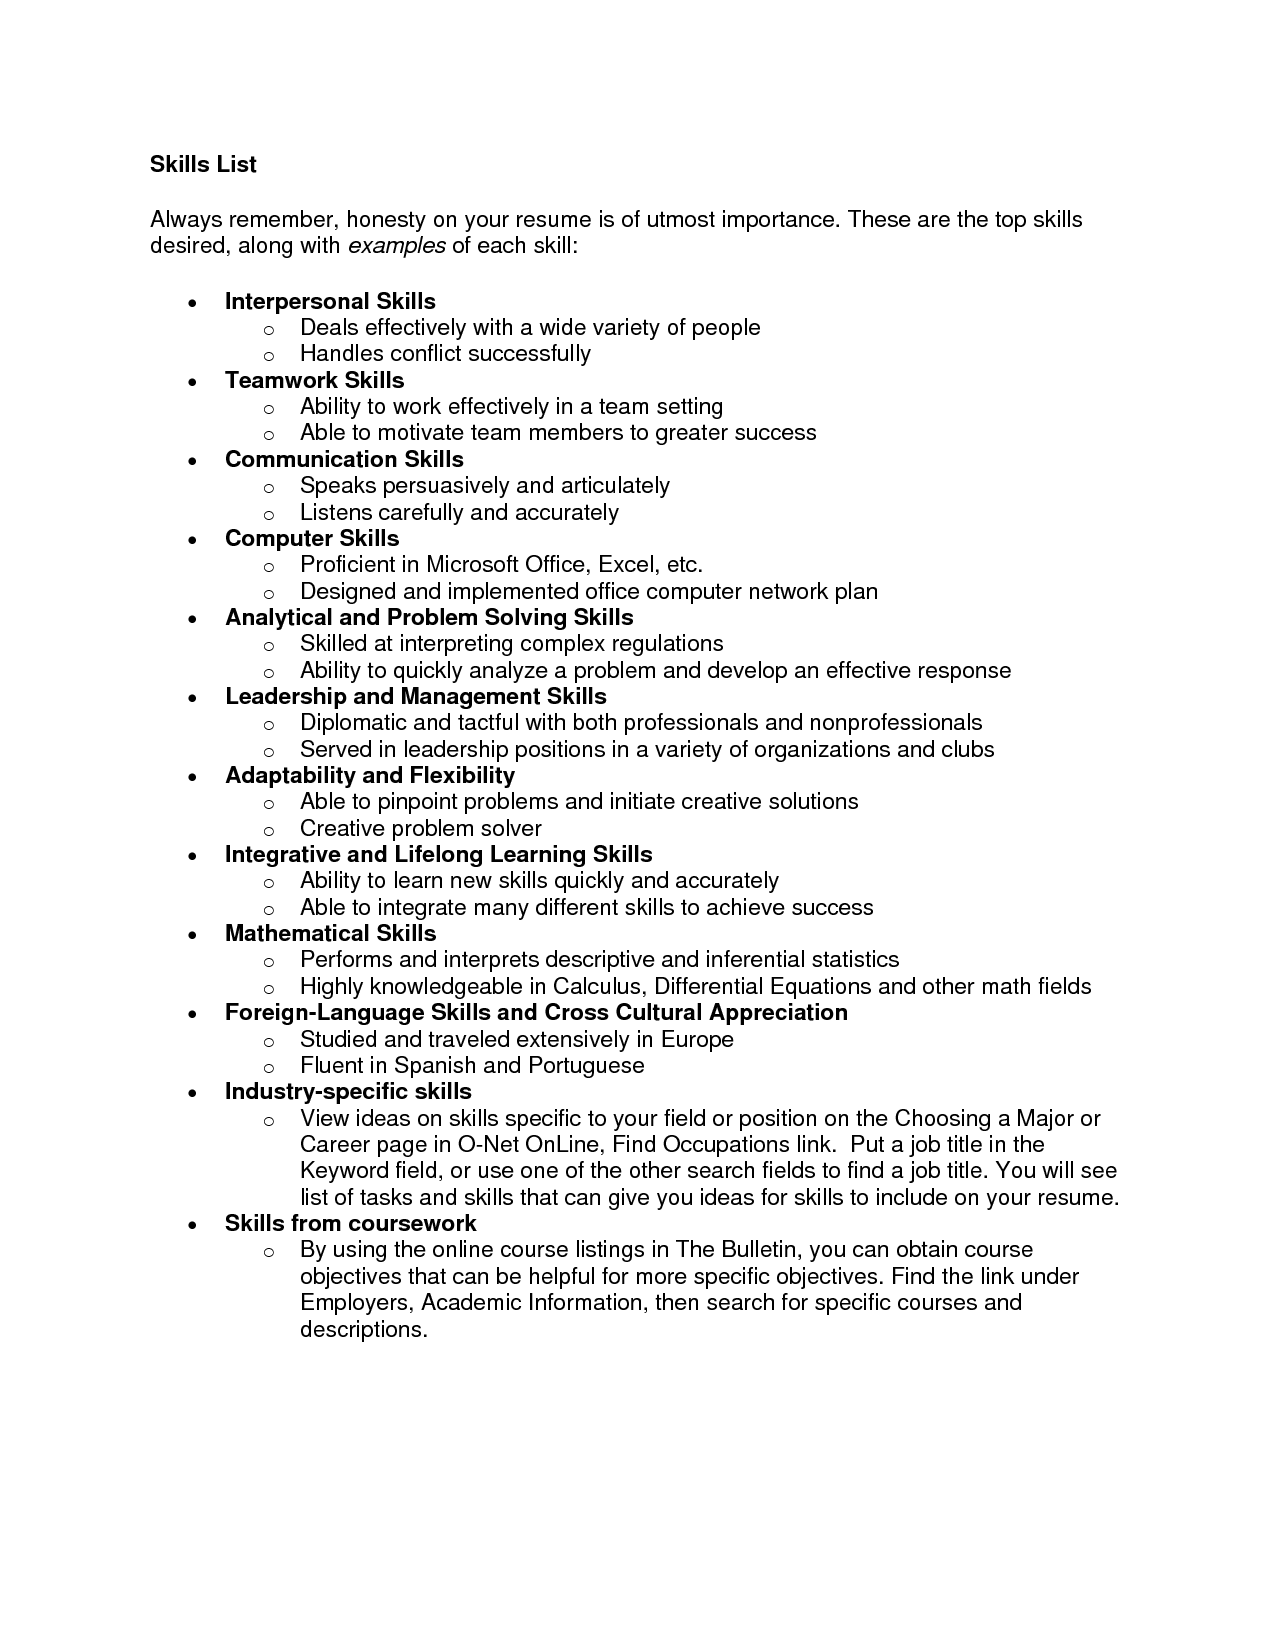 Skills List For Accounting Resume